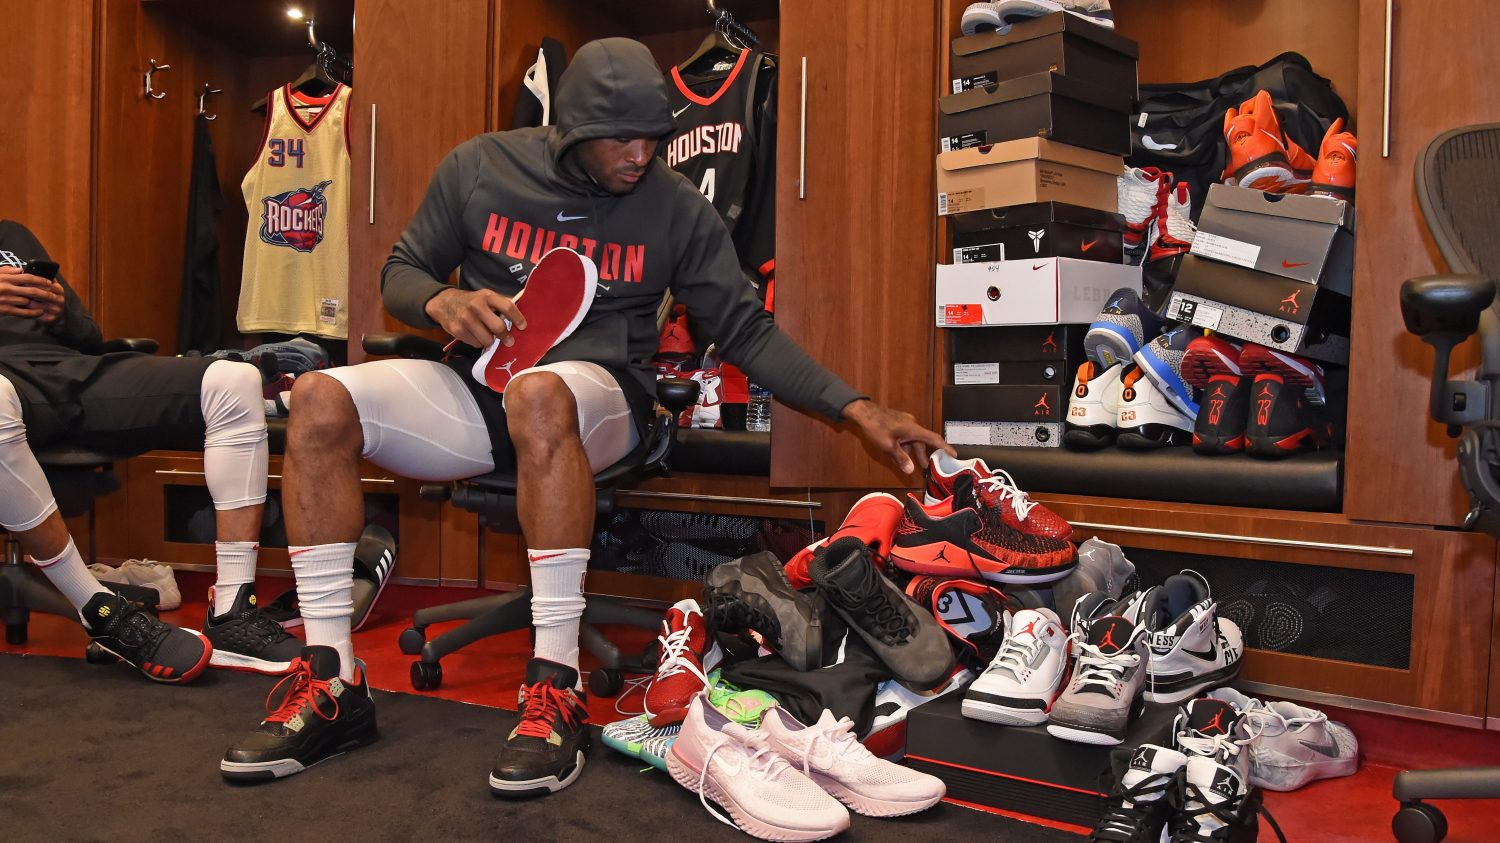 984f70f8 The complete — and insane — list of P.J. Tucker's 2018 NBA playoff sneakers